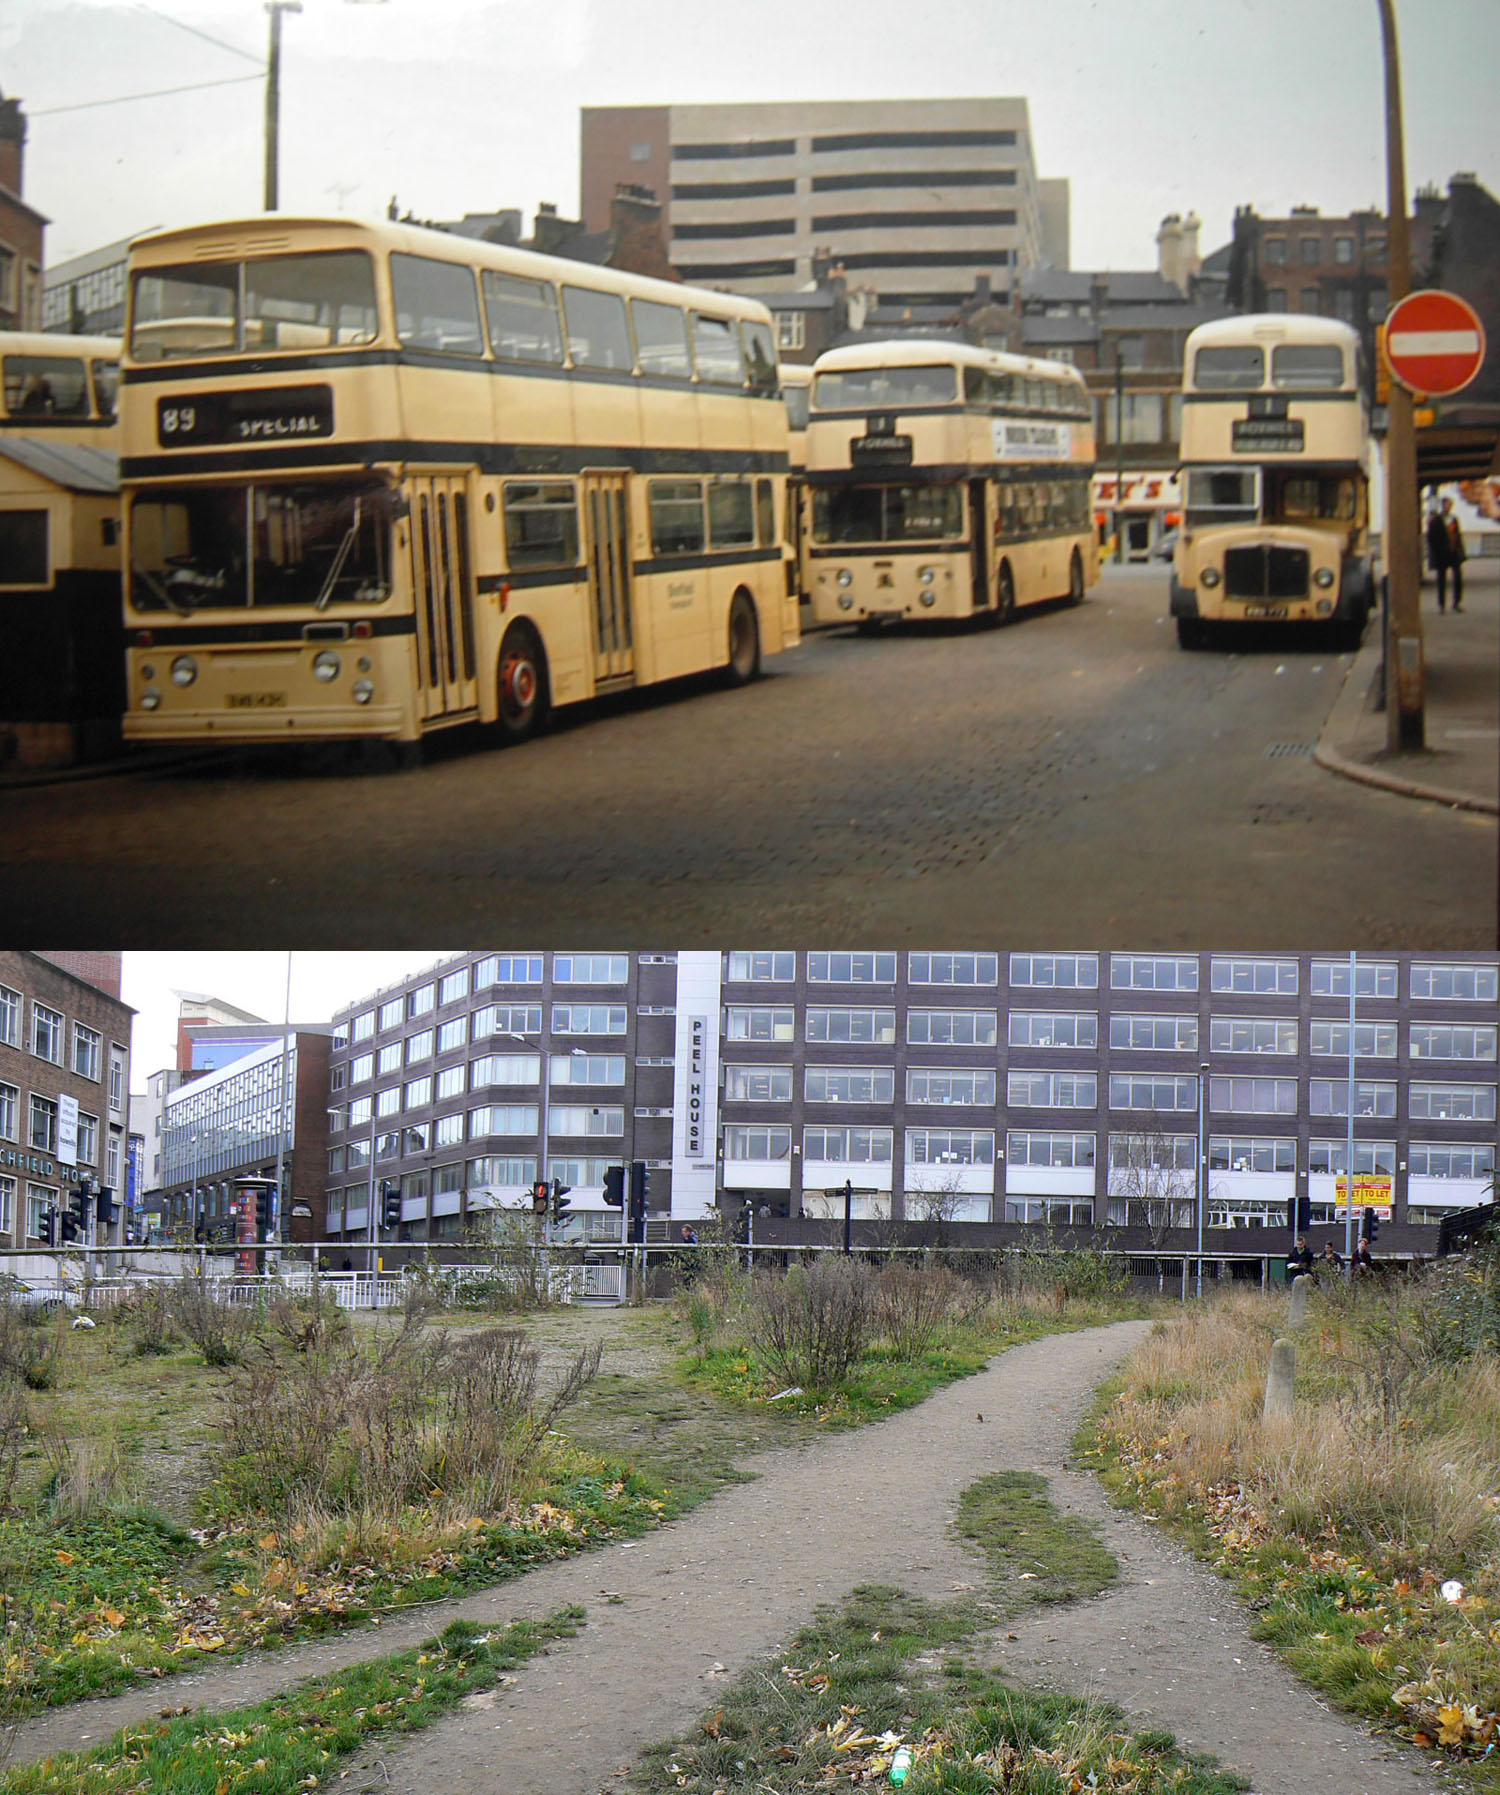 Sheffield History - Then and Now Photo Thread